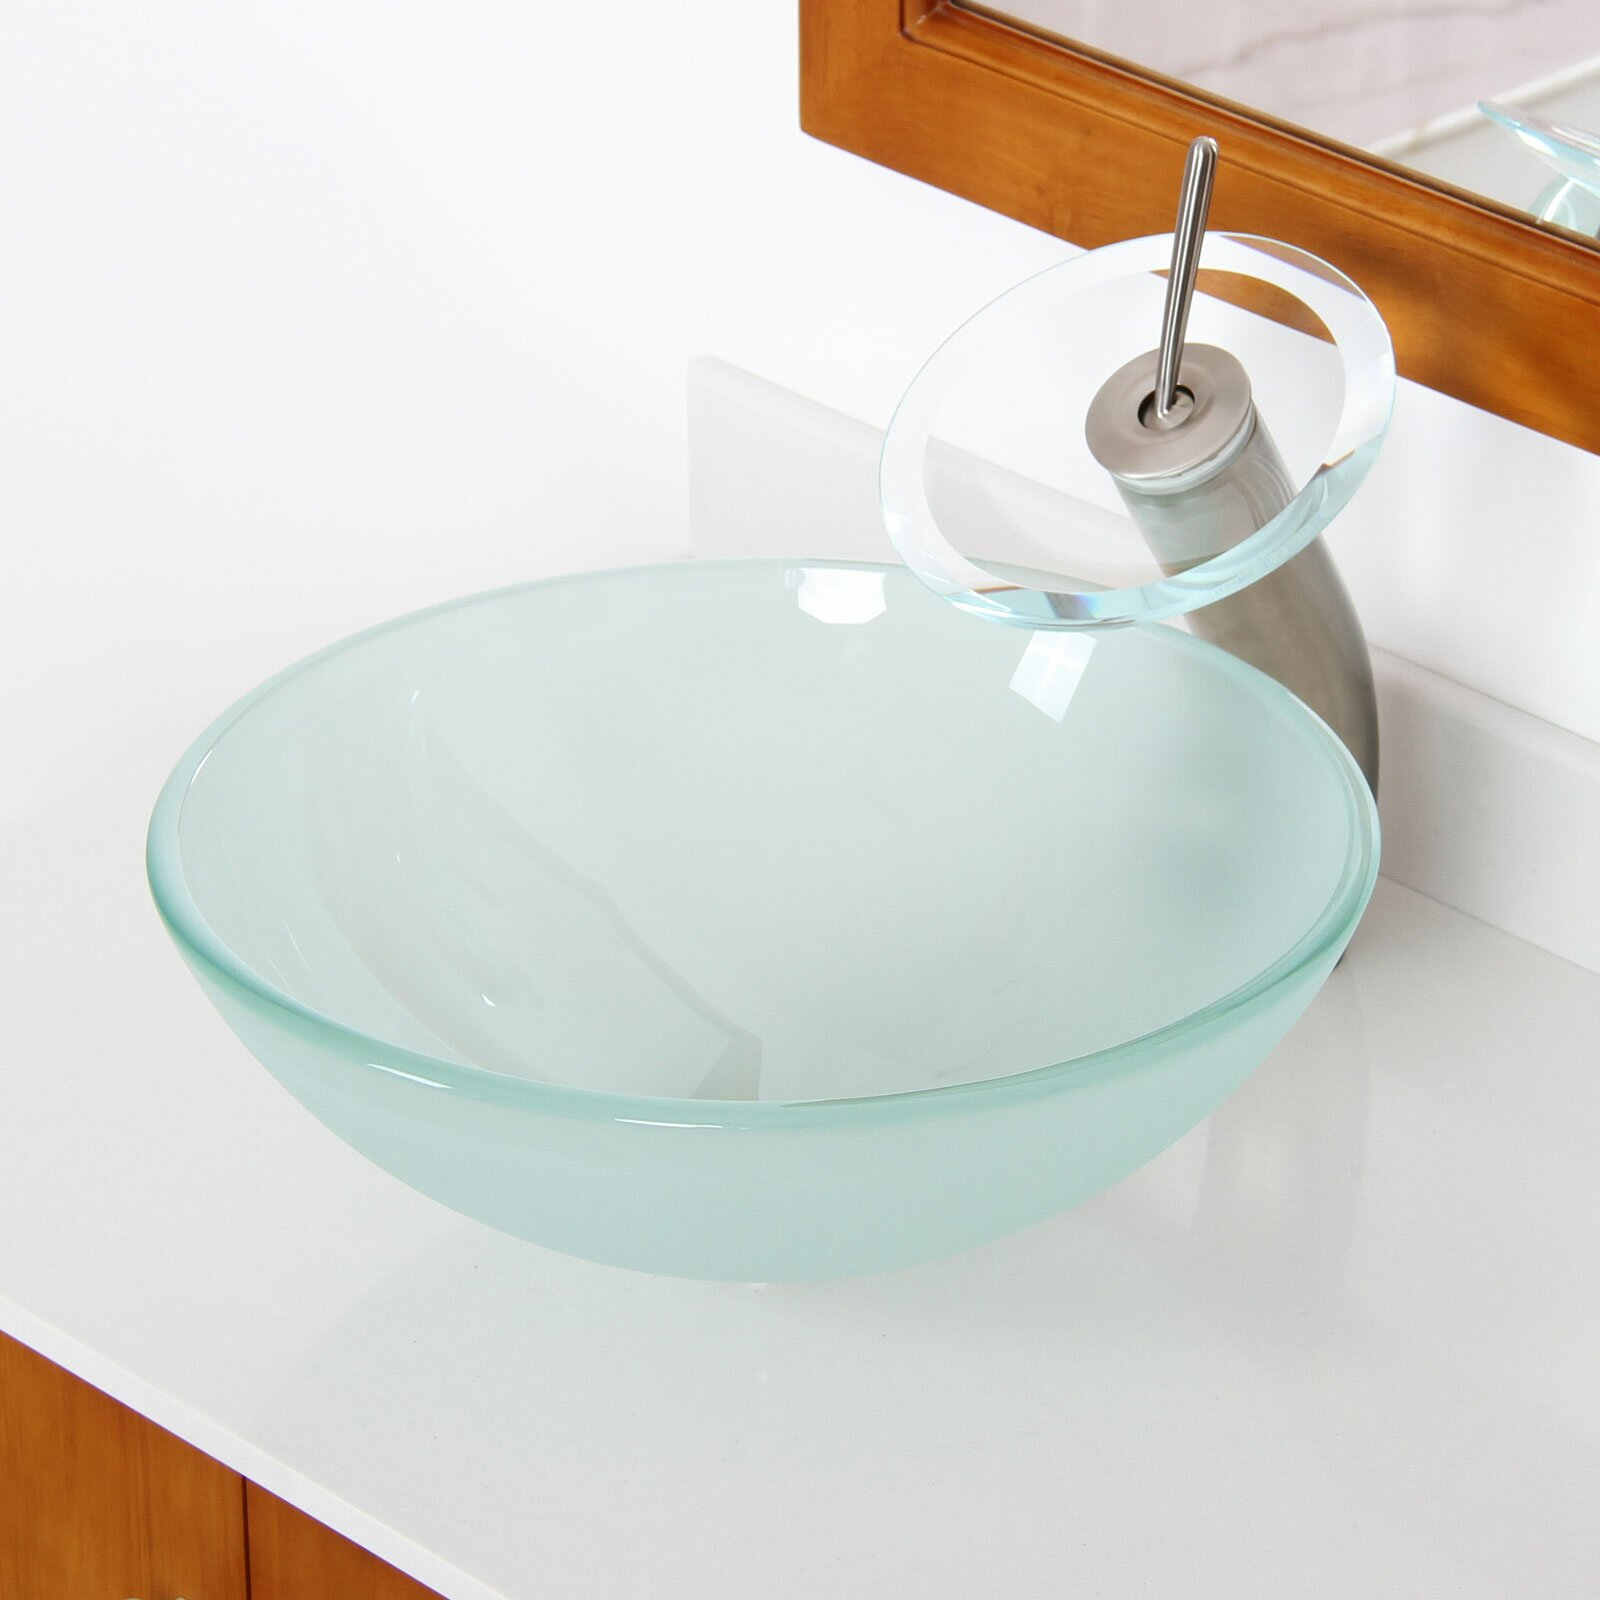 Round Bathroom Sink Bowls : Double Layered Tempered Glass Round Bowl Vessel Bathroom Sink by Elite